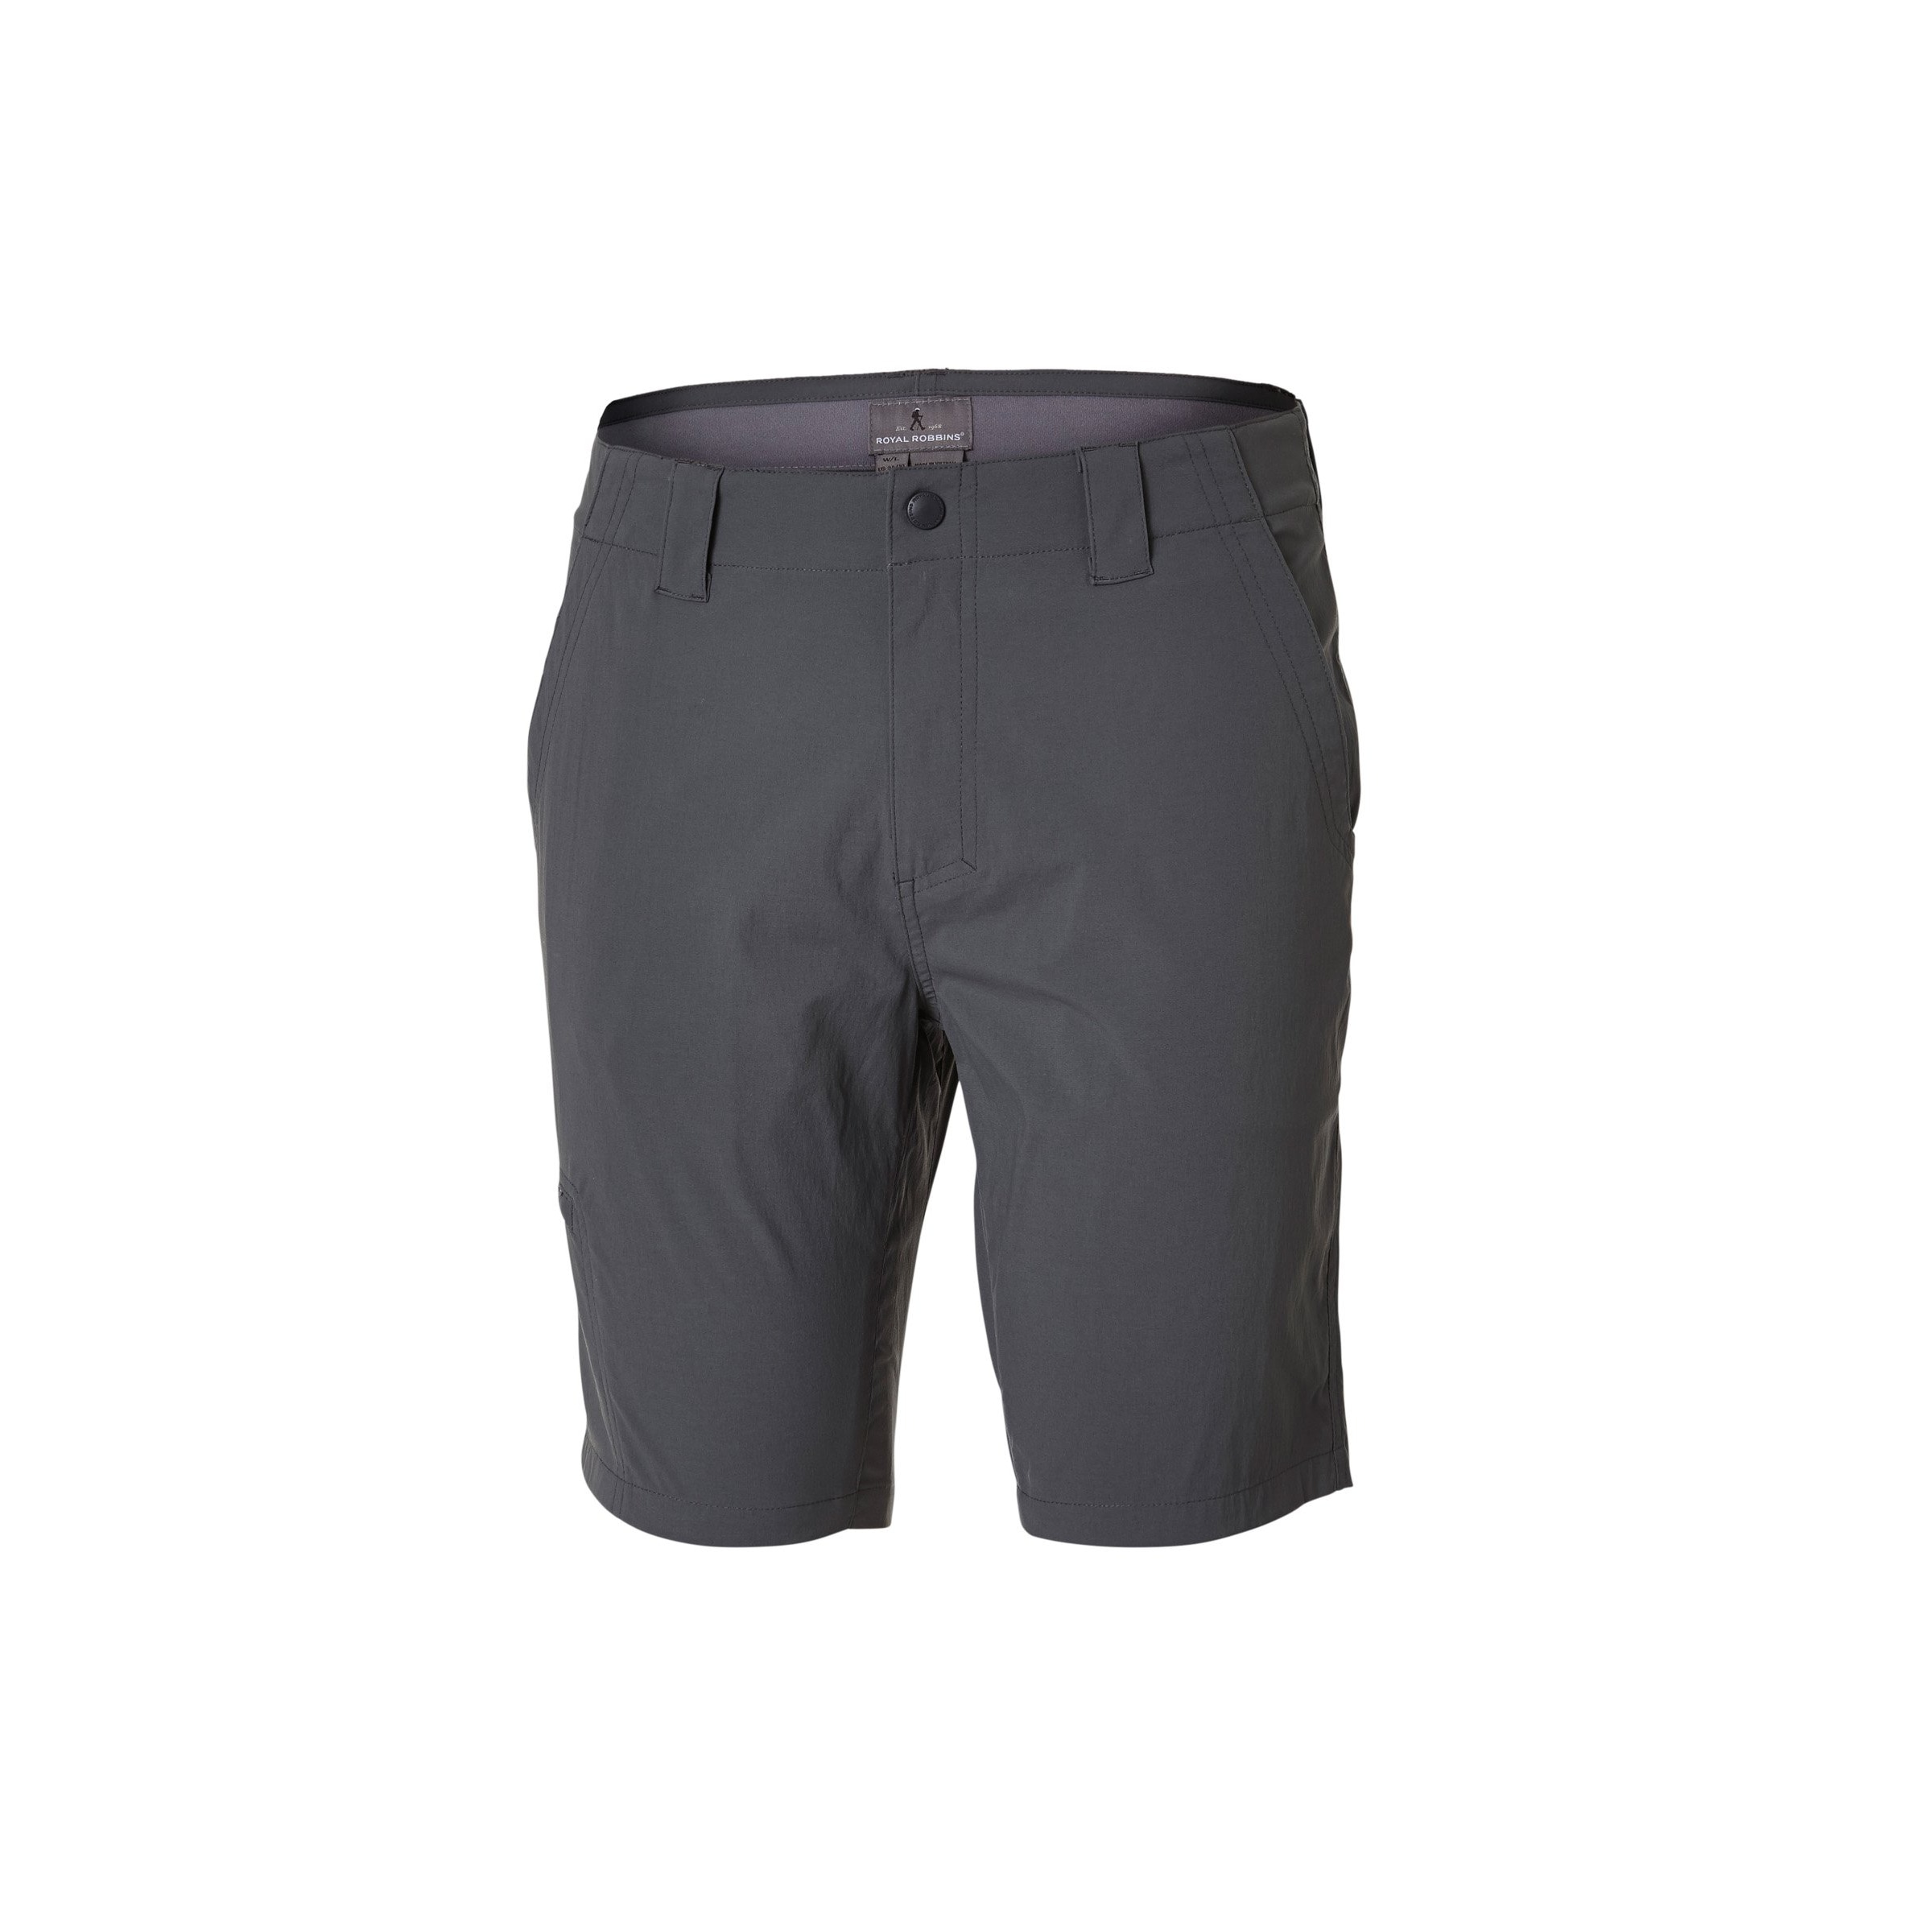 Everyday Traveler Short - Men's